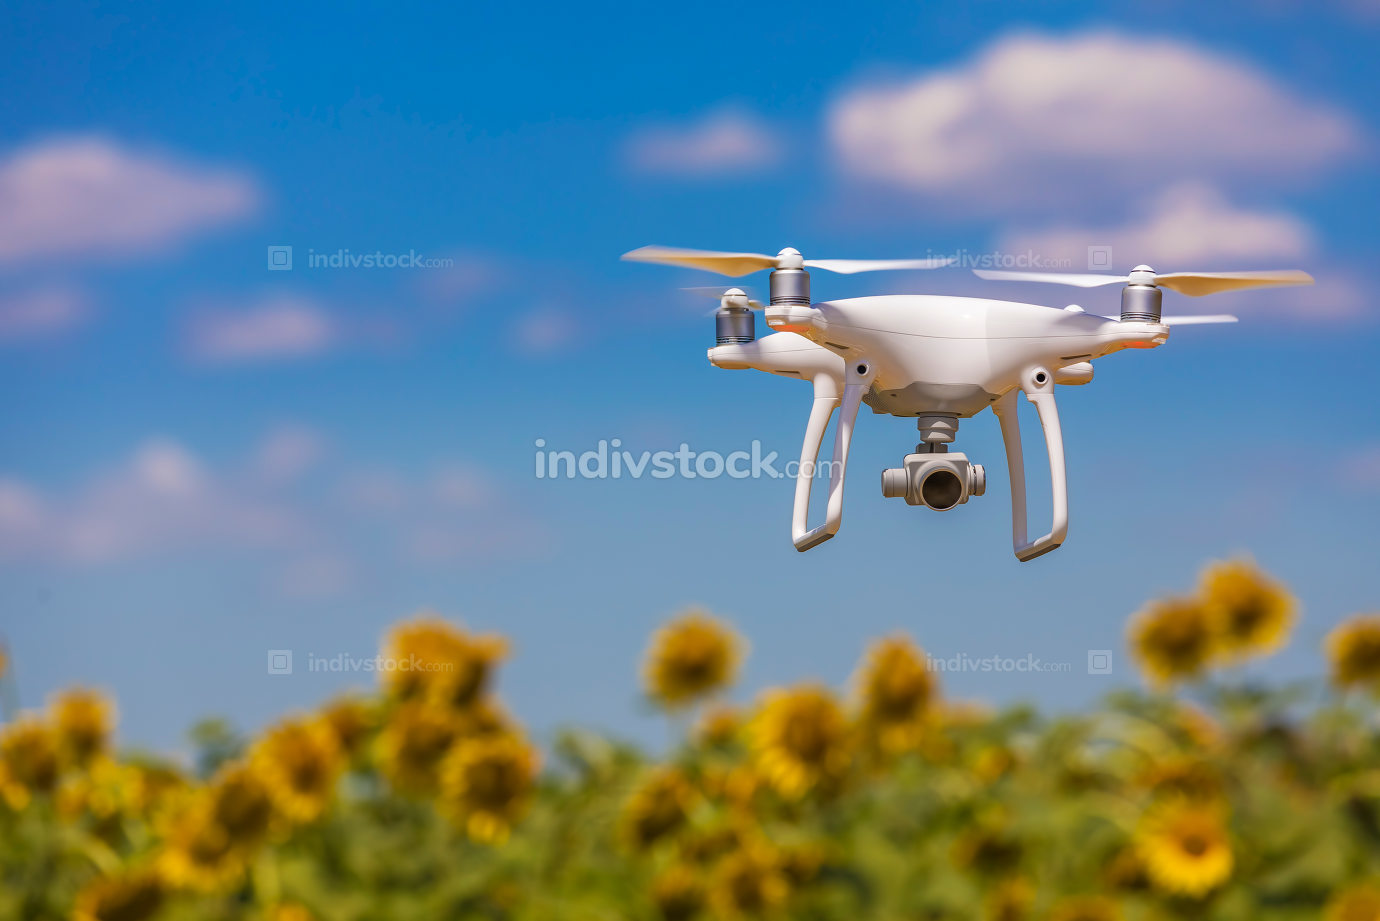 Drone hovering over sunflower field  in clear blue sky